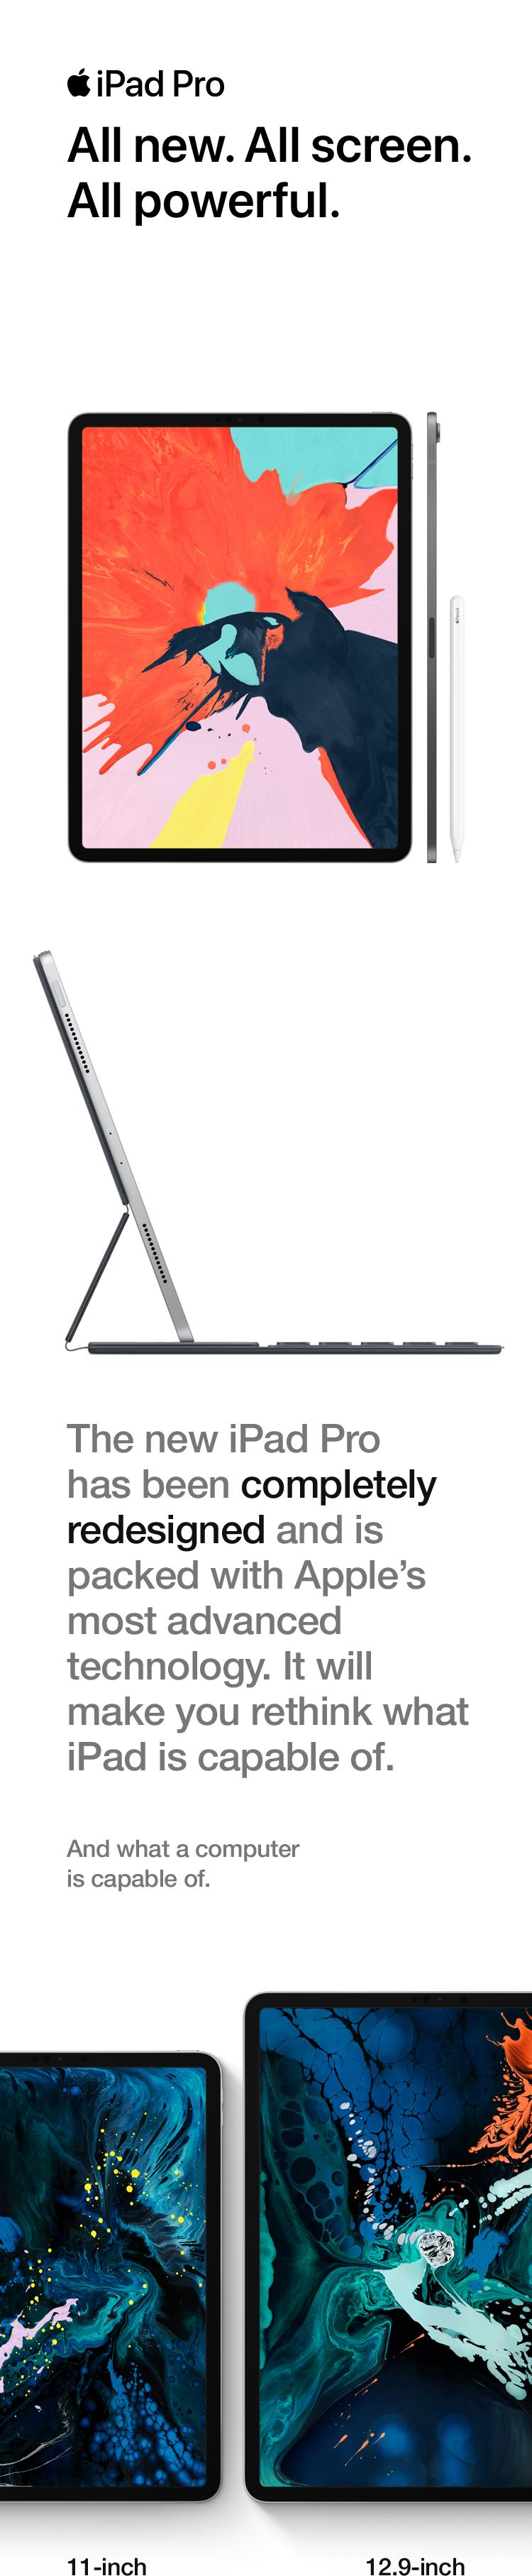 iPad Pro - All new. All screen, All powerful.